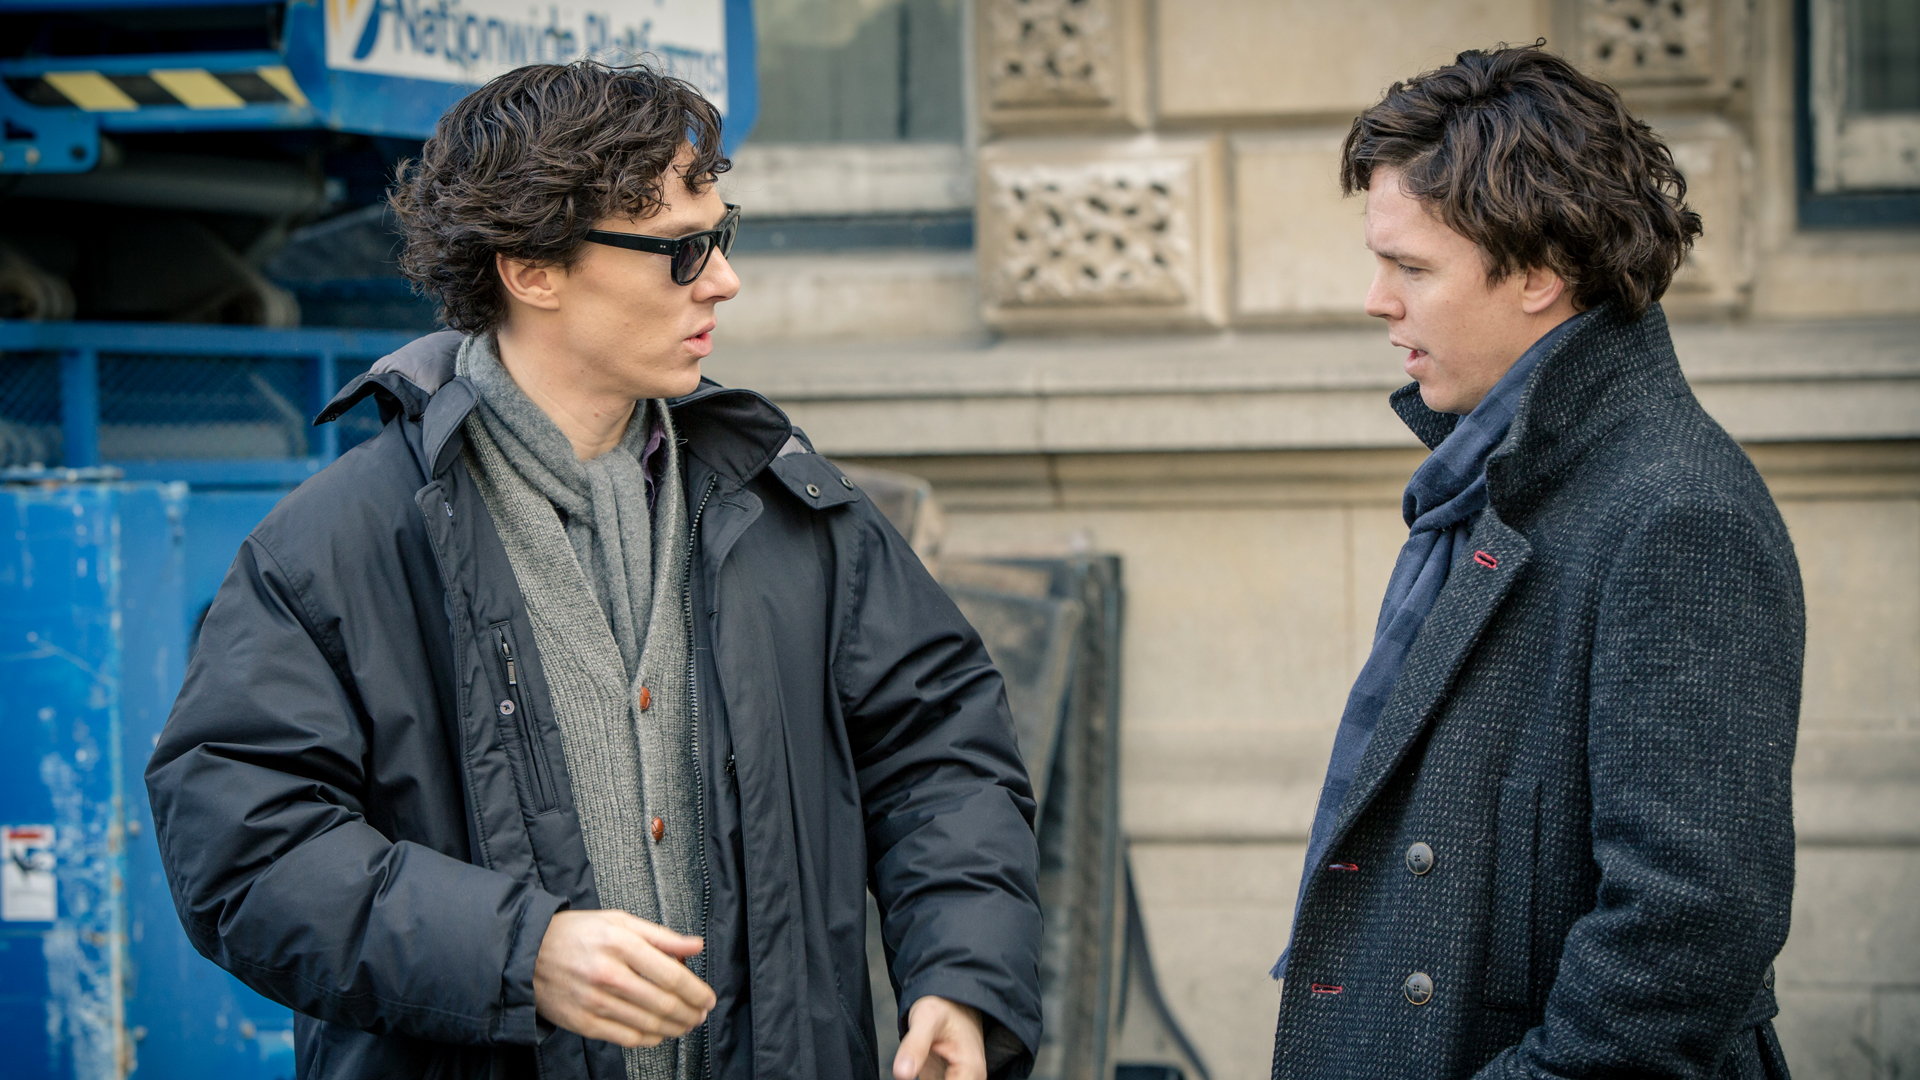 mast-sherlock-s3-ep1-bts-ss-hires2